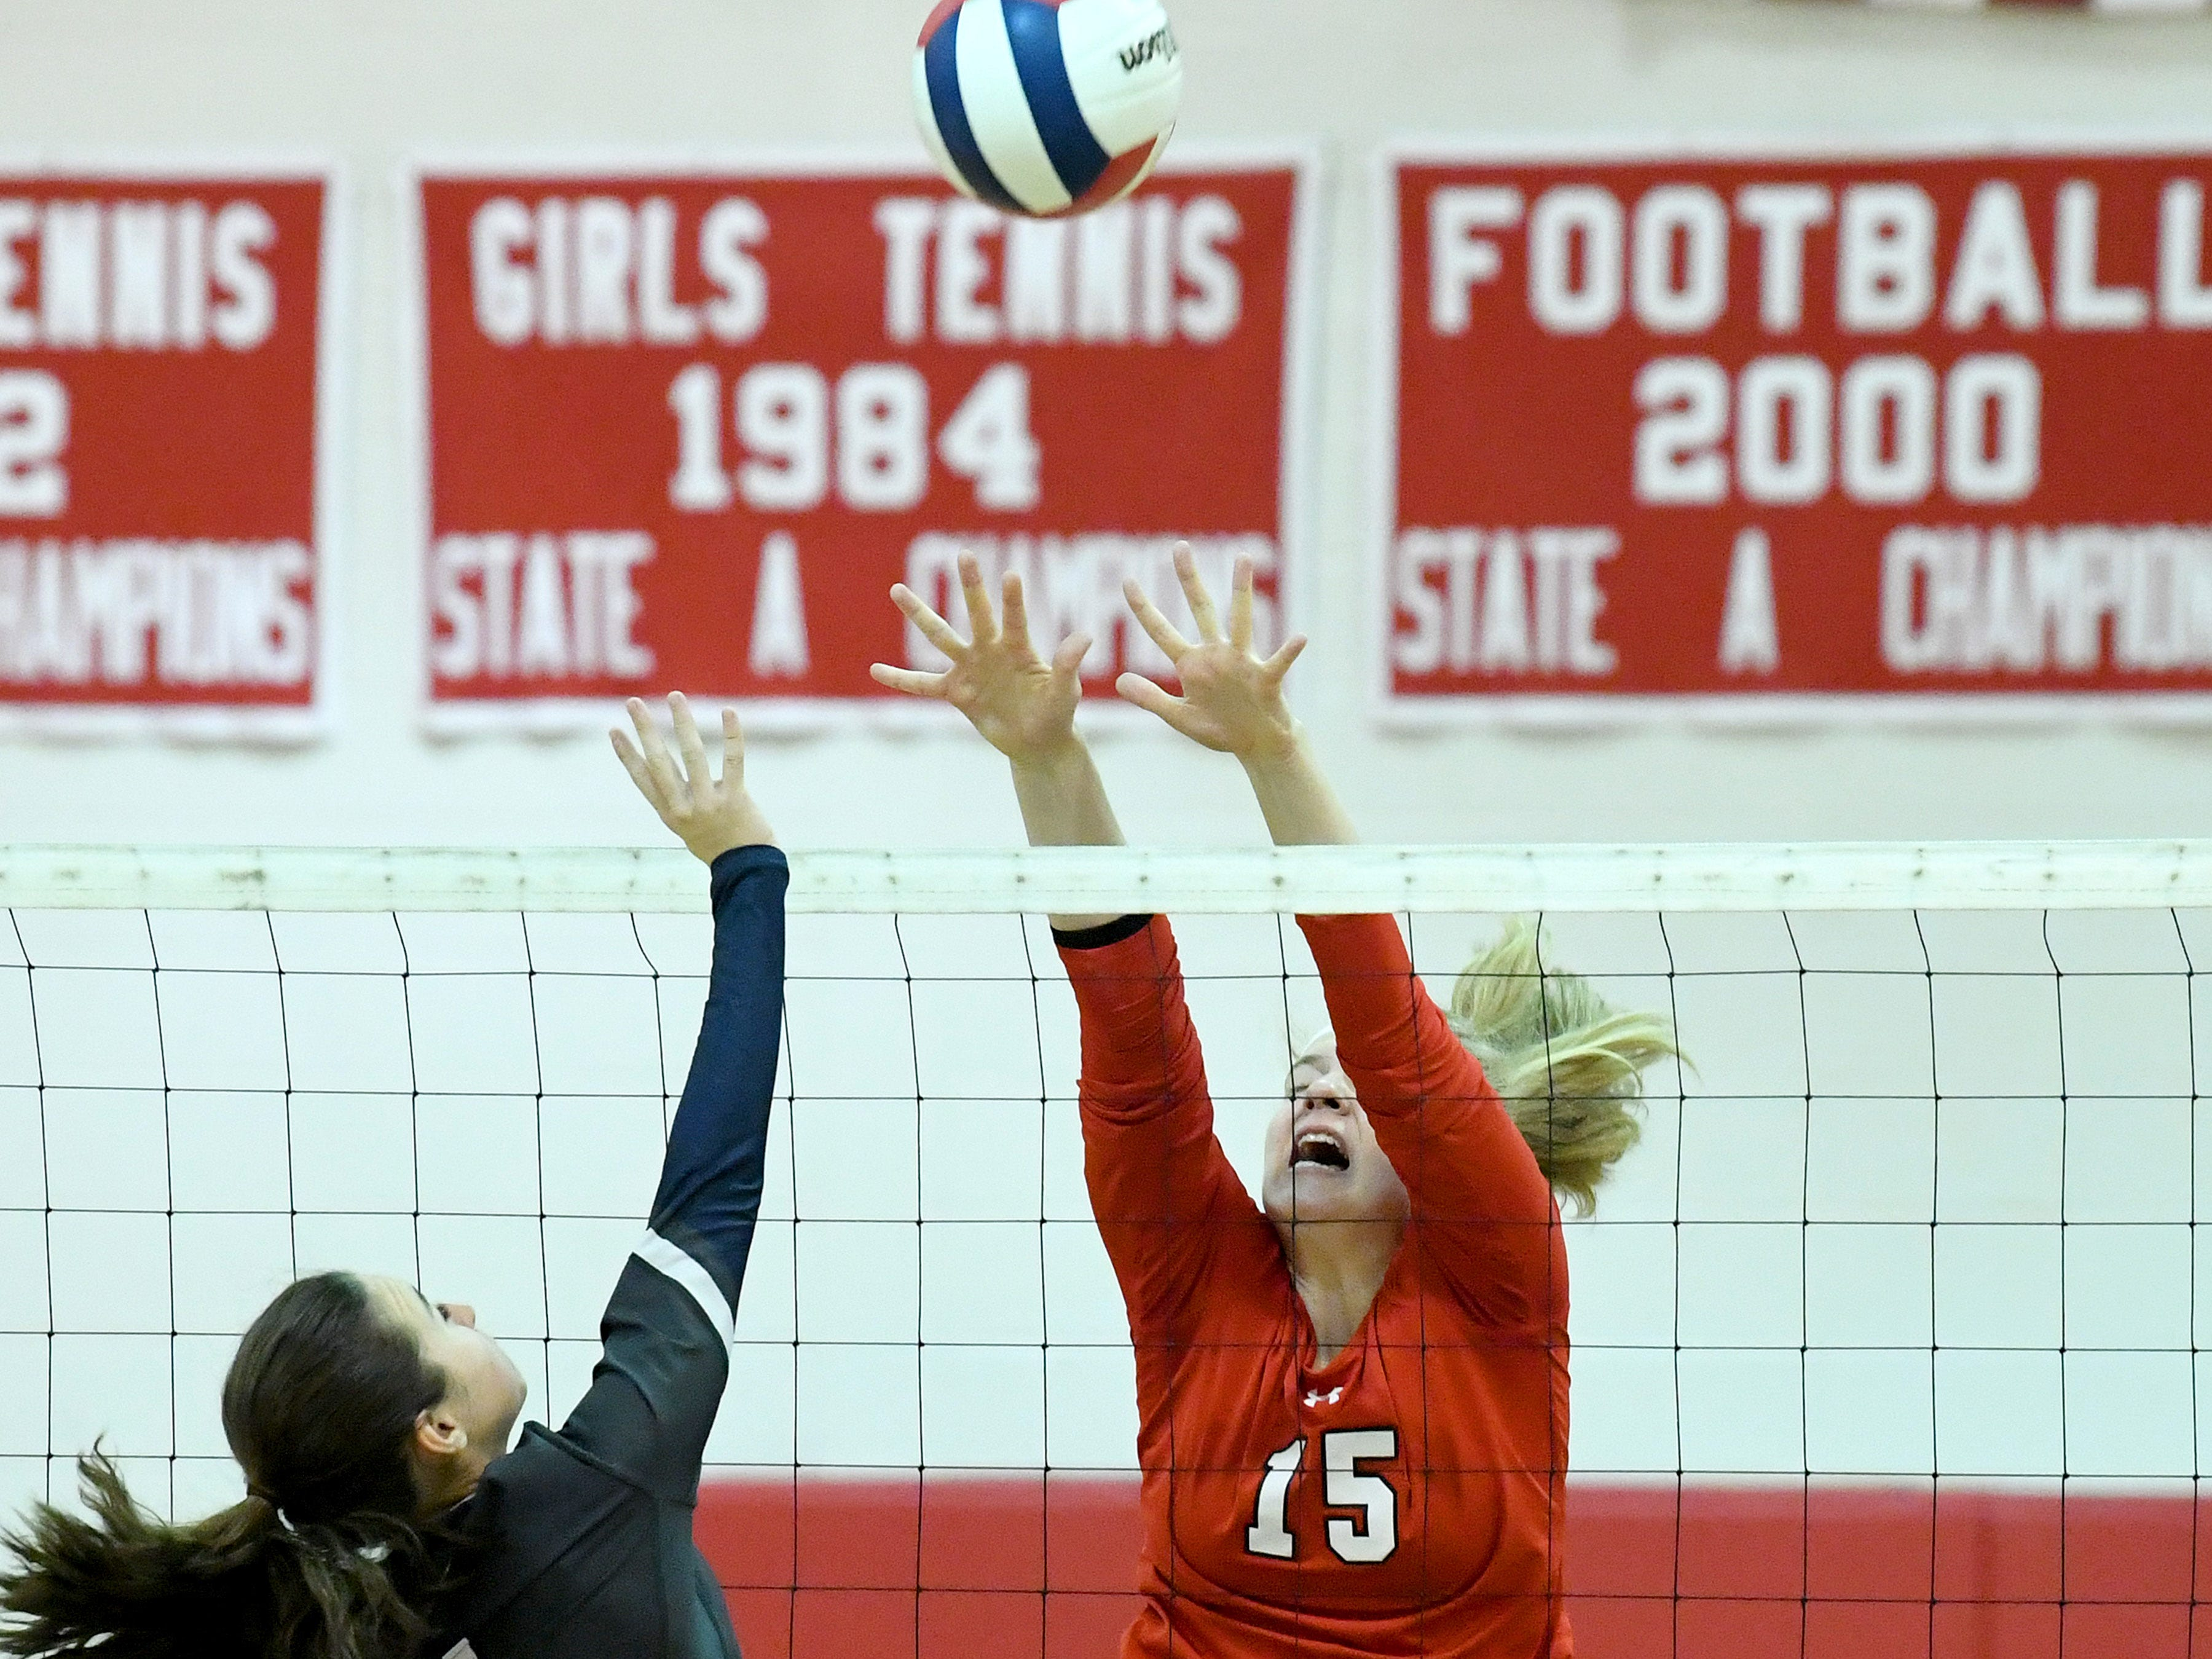 Riverheads' Eva Frederick tries to block a return at the net during a Region 1B quarterfinal match, played in Greenville on Thursday, Nov. 1, 2018.